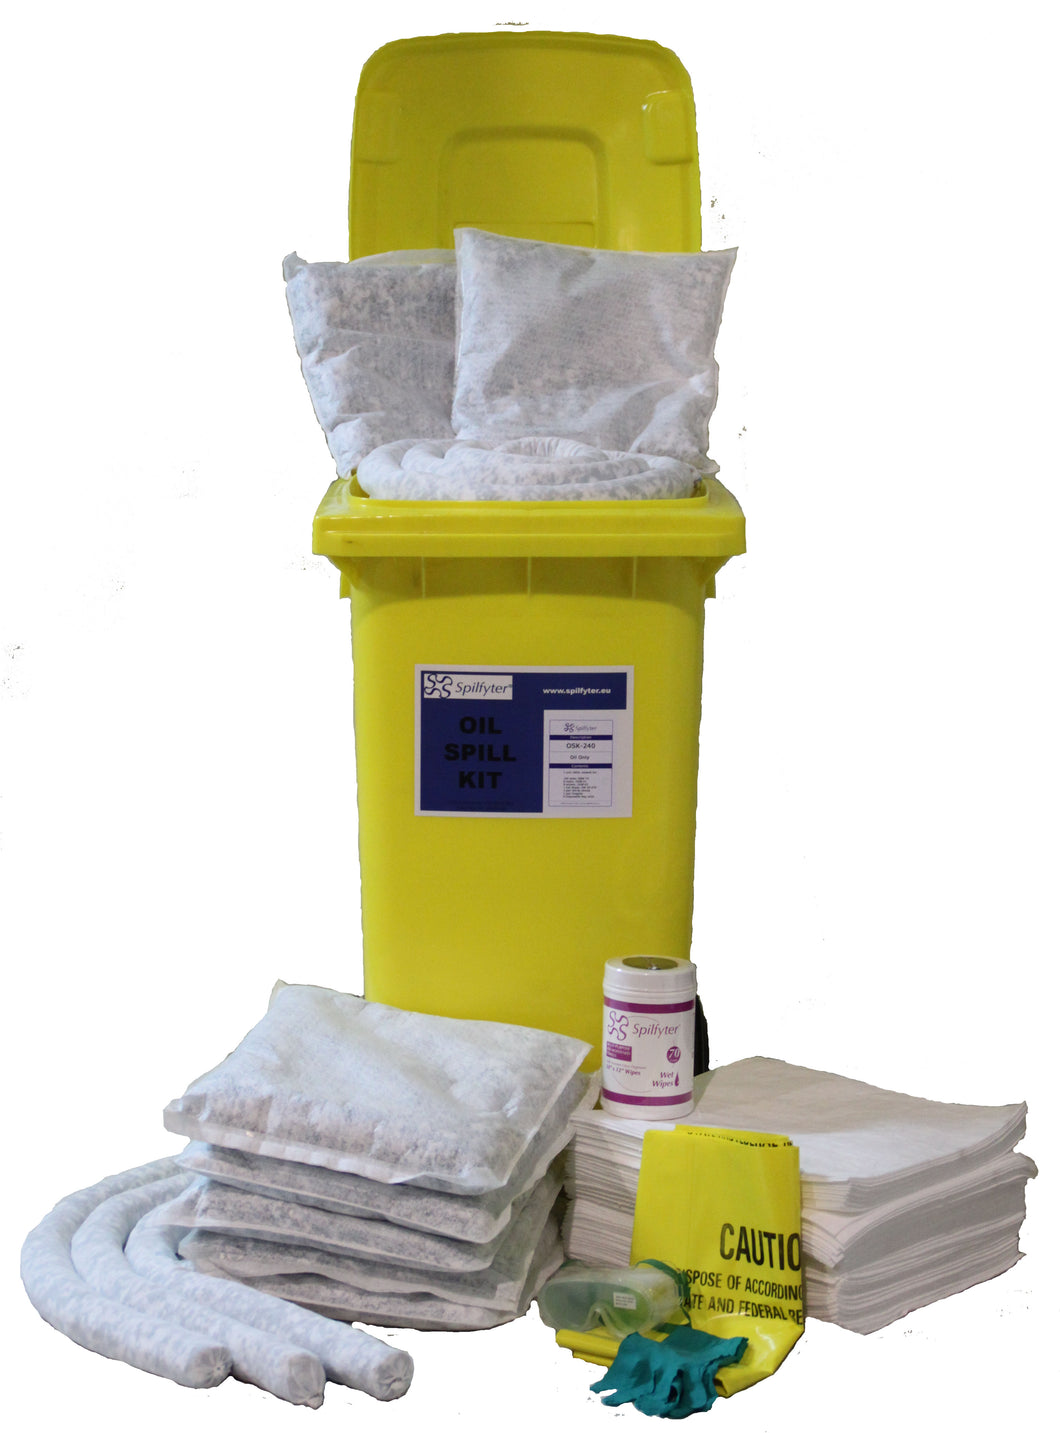 Wheel-bin 240L spill kit - Industrial Labelling supplies